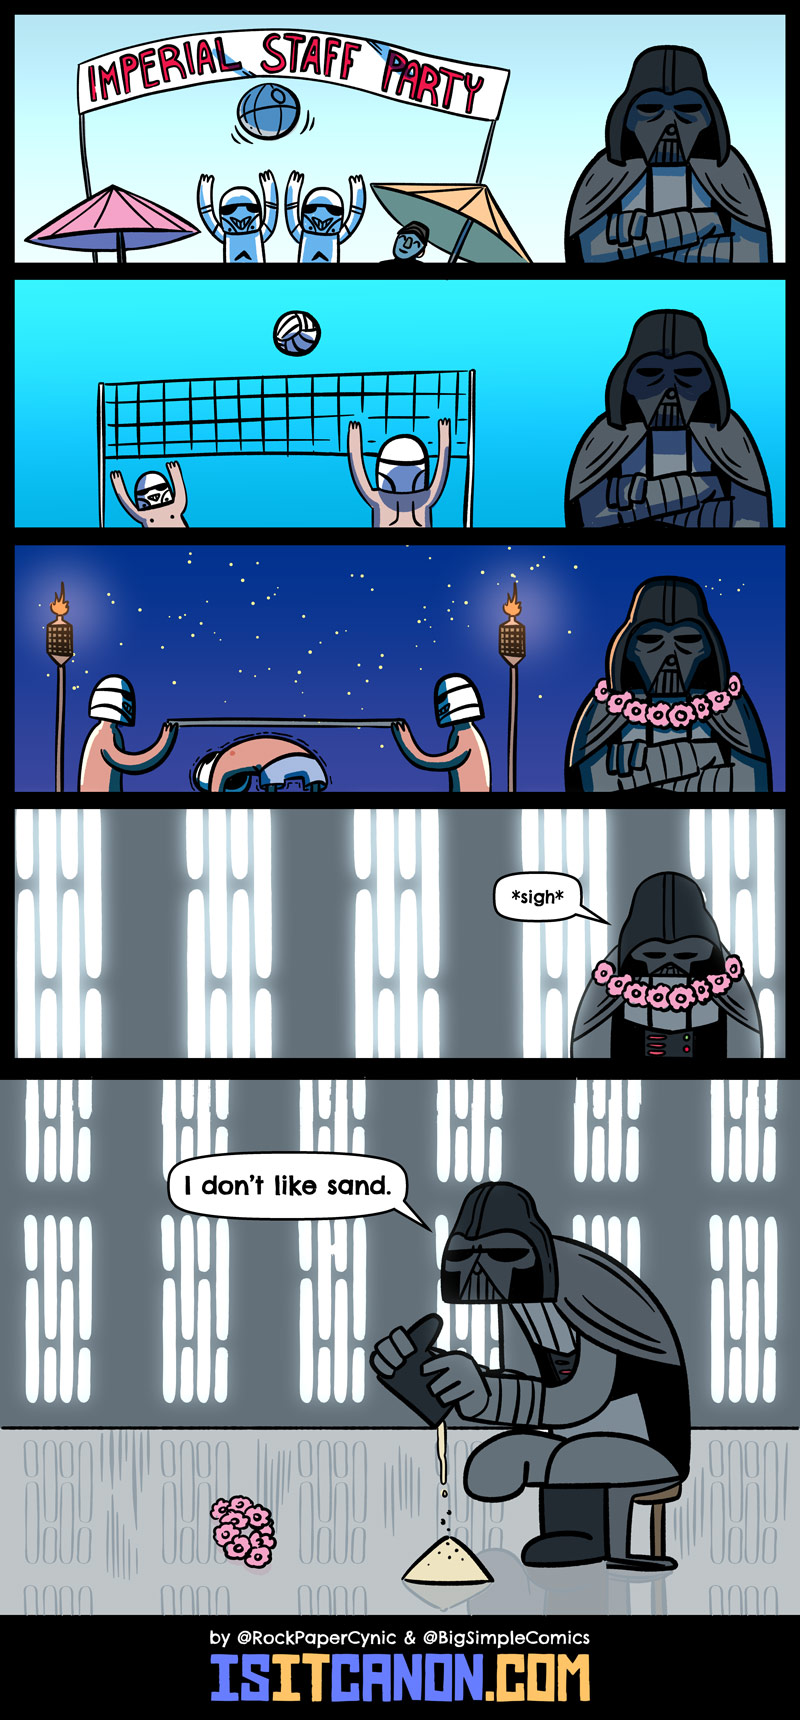 In this comic, Darth Vader has to go the Imperials' annual company retreat at the beach.